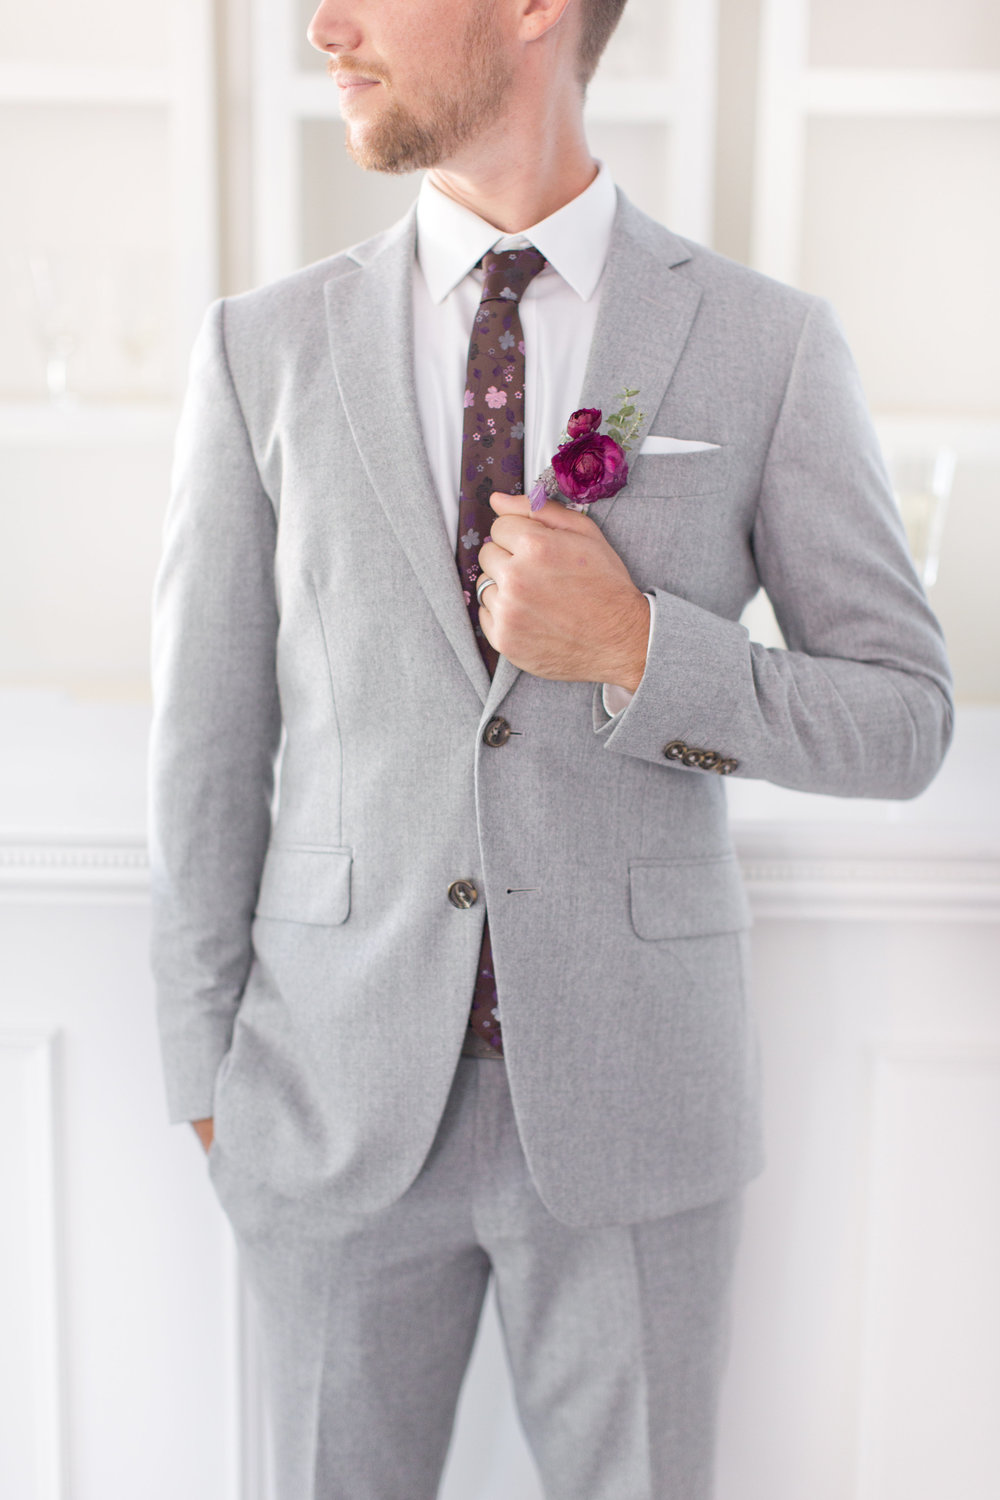 Amy & Jordan Workshop - Groom in light grey custom suit with purple boutonniere